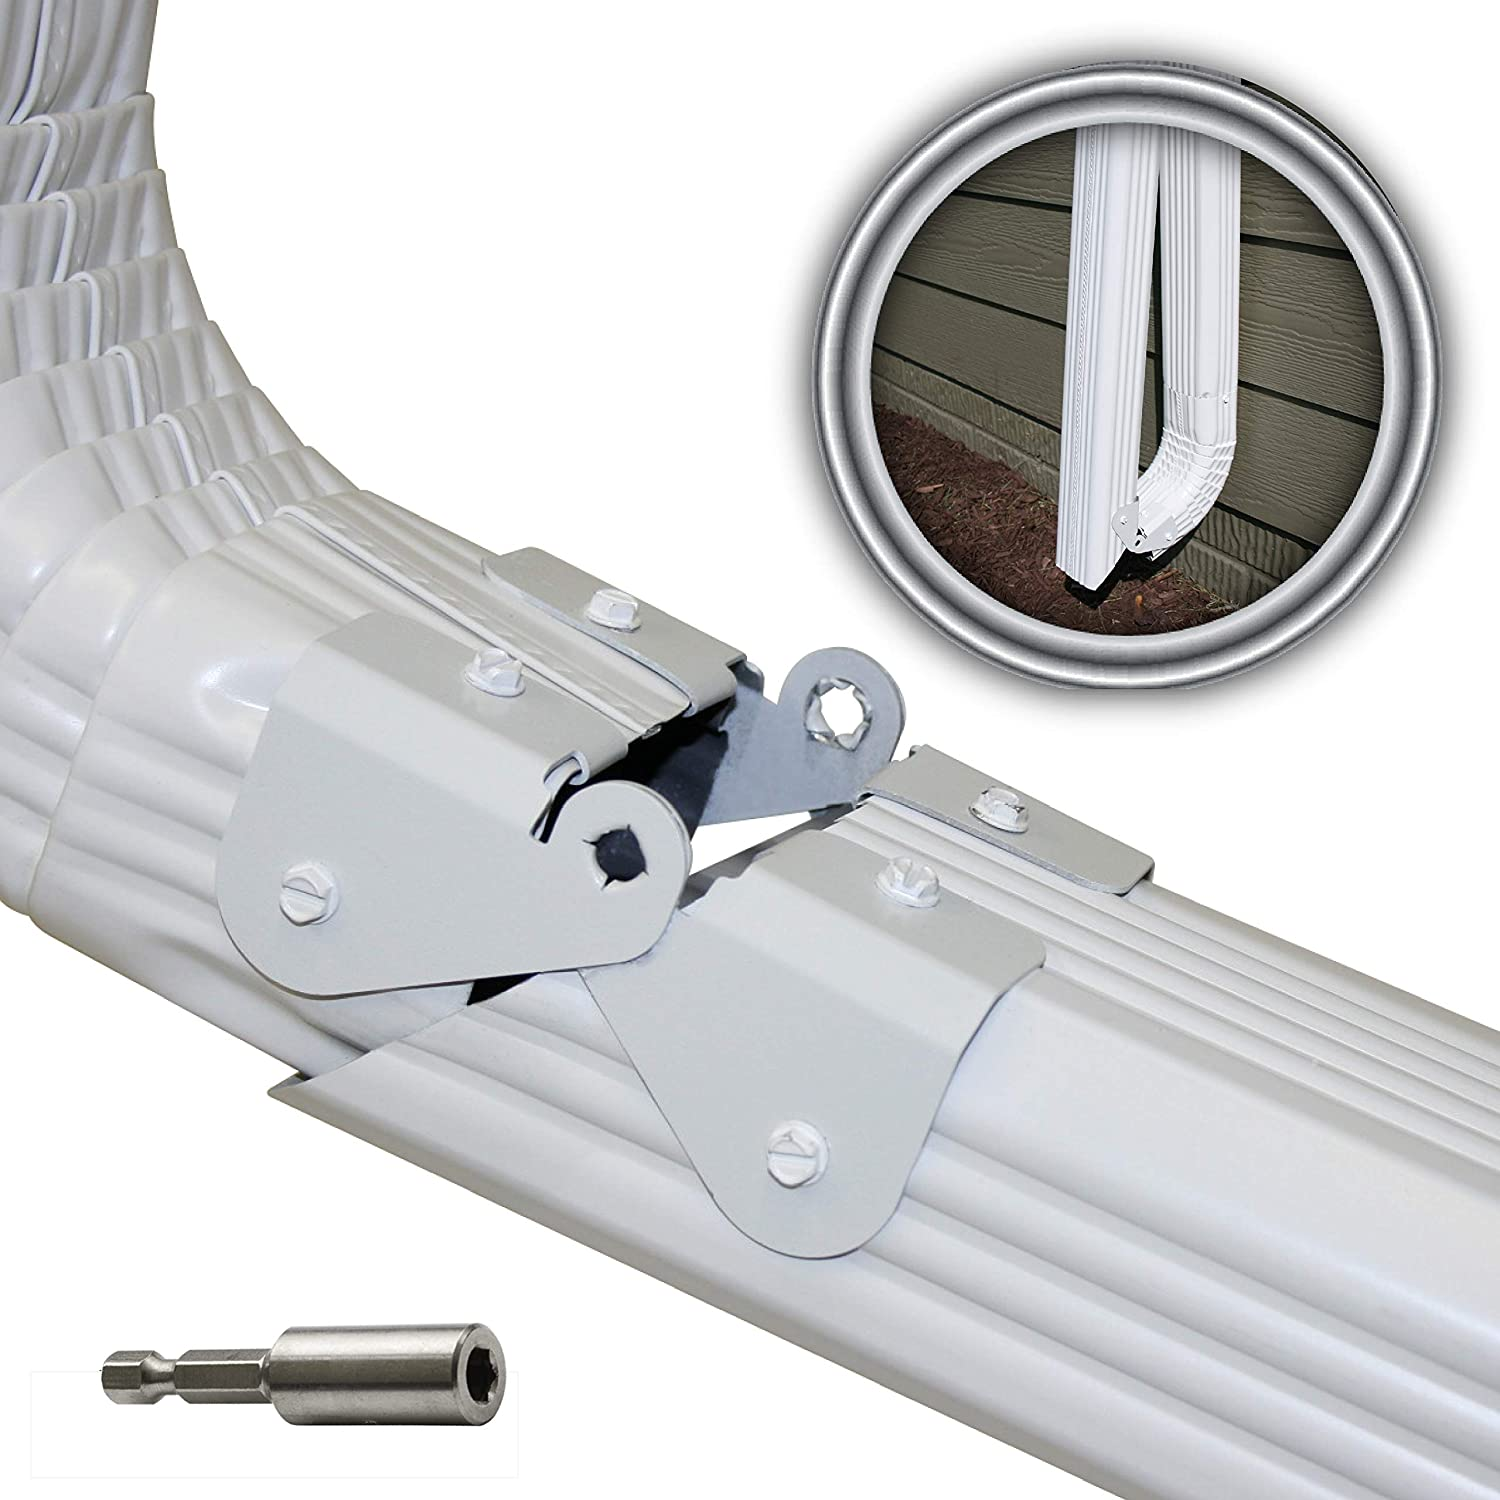 Zip Hinge 5 Pack Plus | 1-6 Packs of Gutter Extension Hinges | Also Includes Clasp, Screws, Magnetic Nutsetter & Instructions | Easy DIY Installation on Any Size Rectangle or Square Downspout